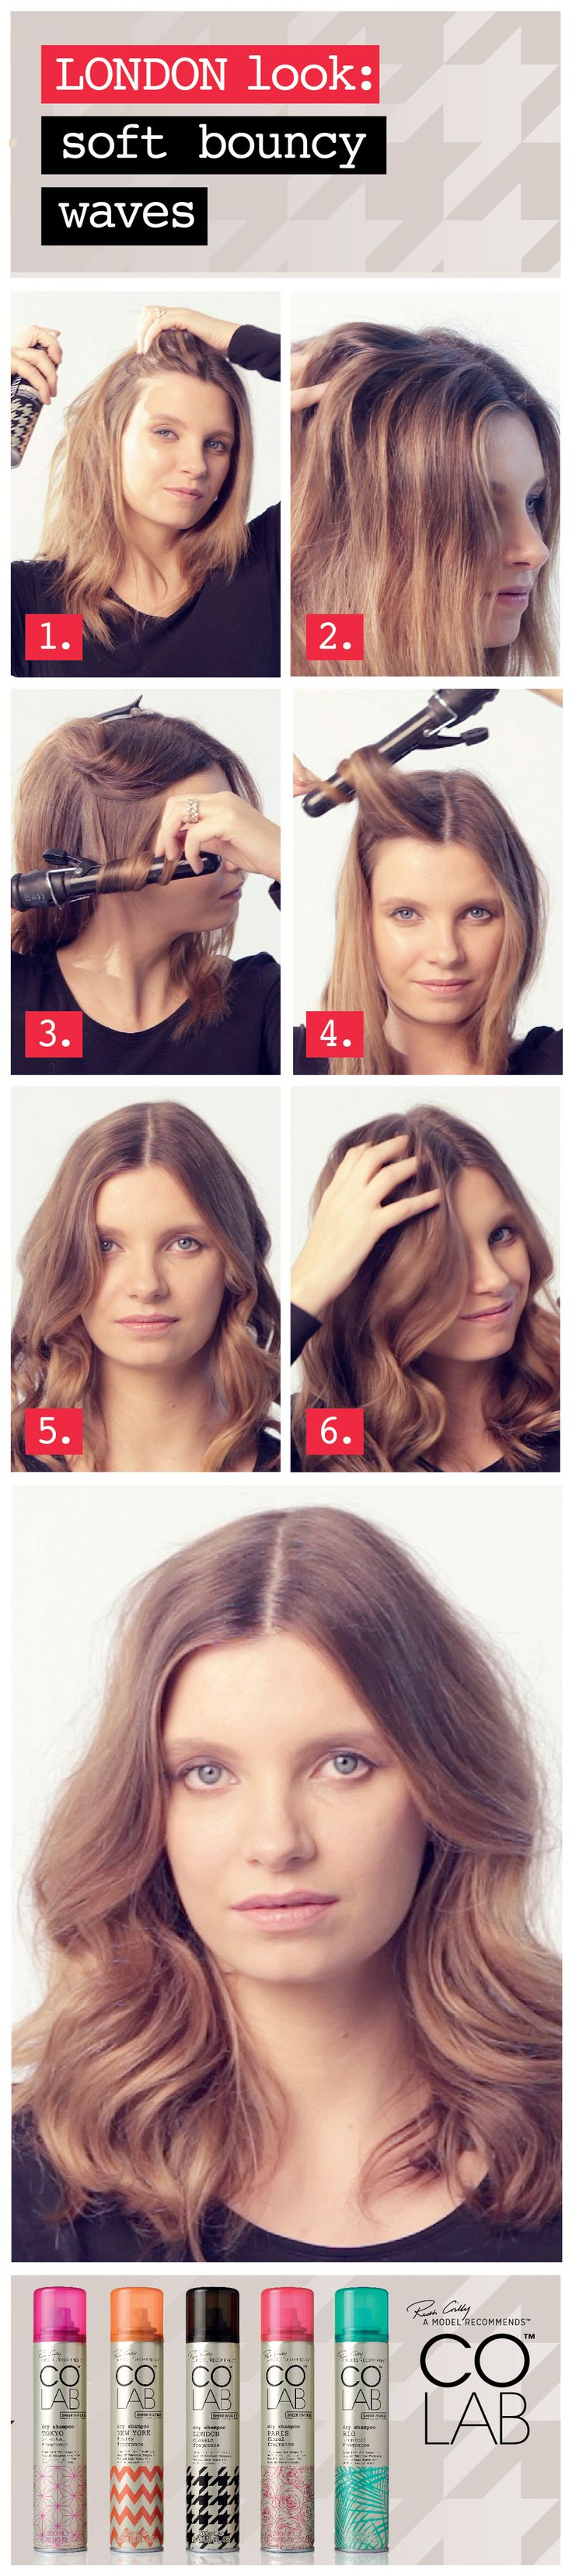 Learn how to create perfect soft, bouncy #waves with COLAB dry shampoo, featuring COLAB extreme volume #London.  Available at Superdrug, Feel Unique & Beauty Mart (UK),  Penneys (Ireland),  London Drugs, Lawtons Drugs & Pharmasave (Canada), Jean Coutu & select Uniprix, Brunet & Familiprix (Quebec).  www.colab-hair.com  #Hair #Beauty #HairTutorial #HowTo #RuthCrilly #ModelRecommends #ColabHairConvert